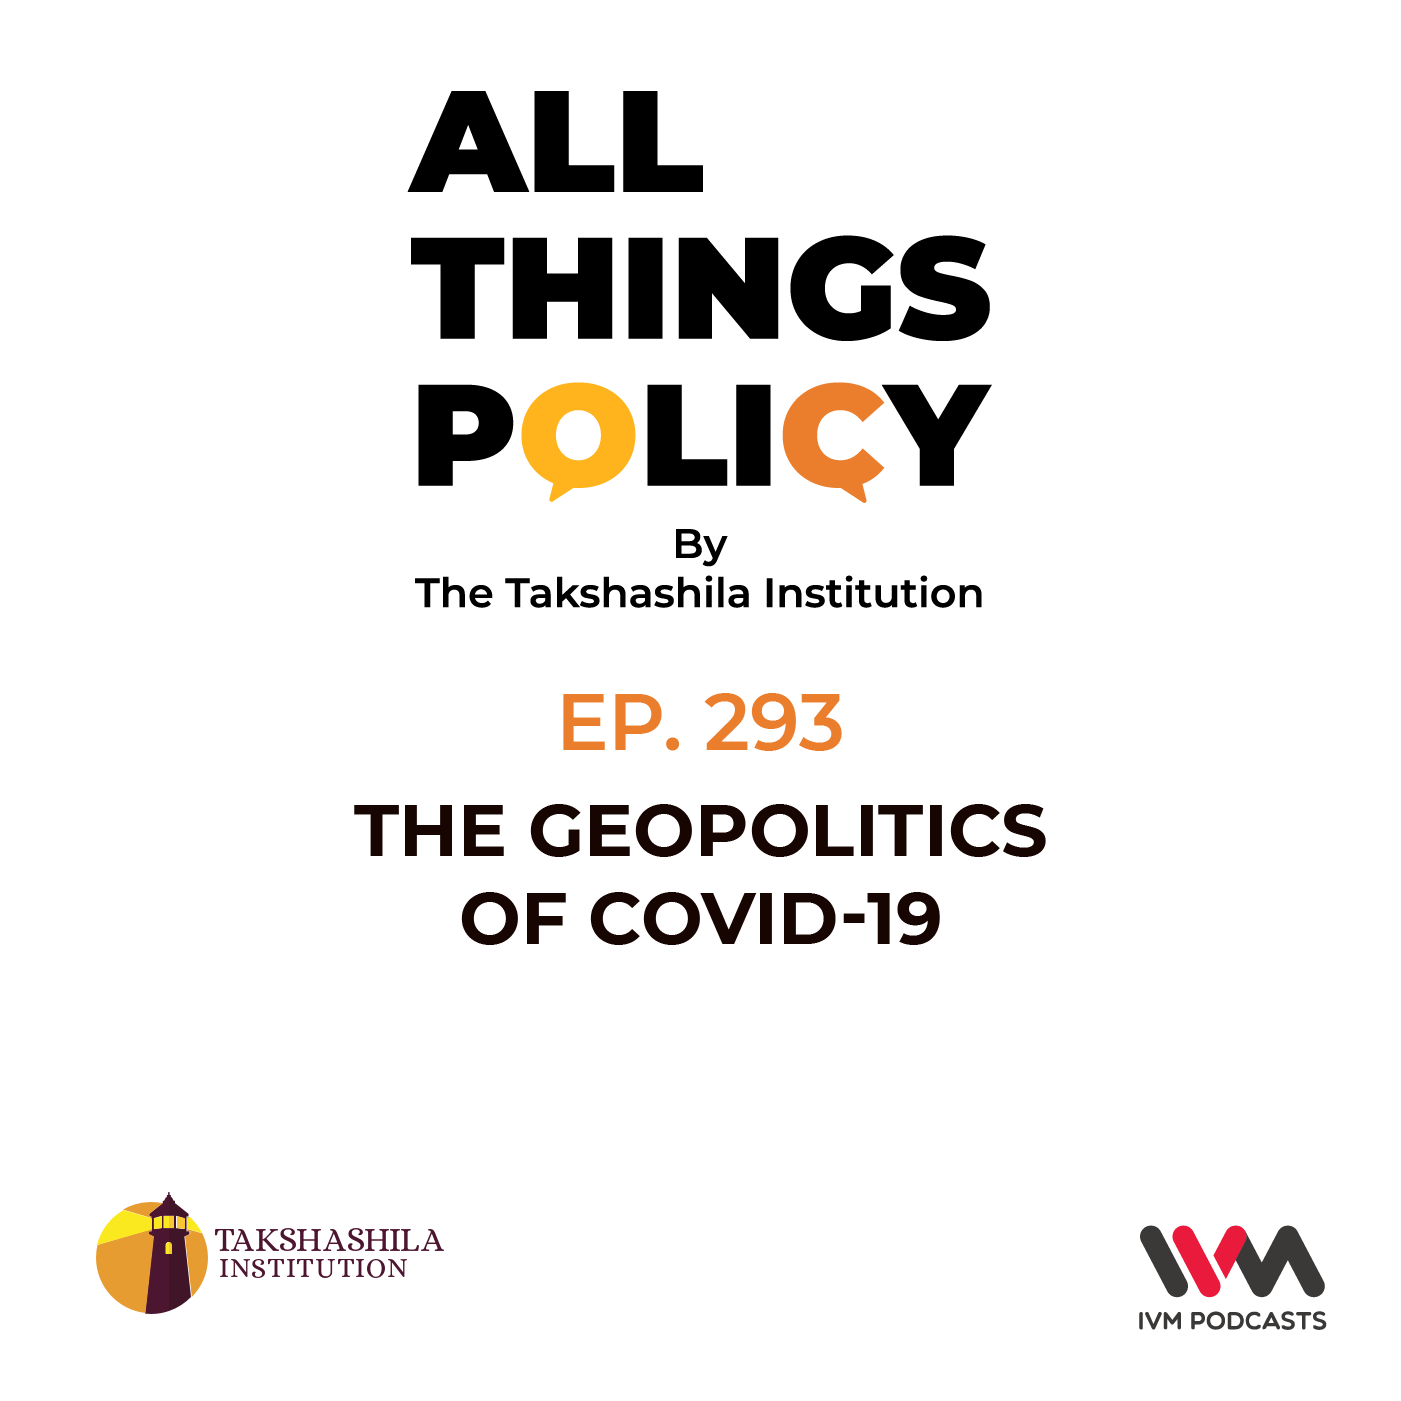 Ep. 293: The Geopolitics of Covid-19